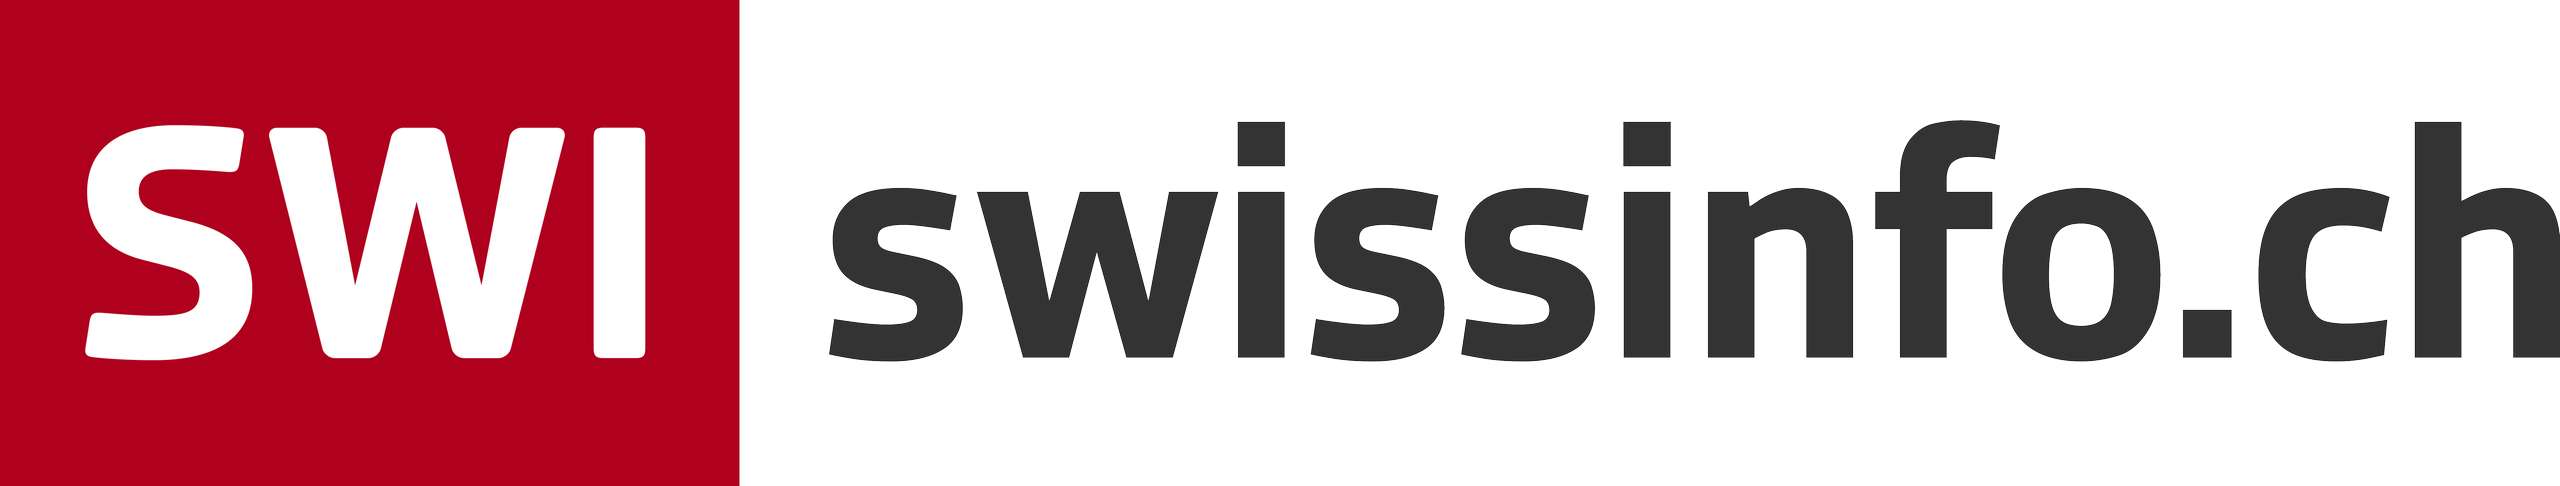 swissinfo blakc version